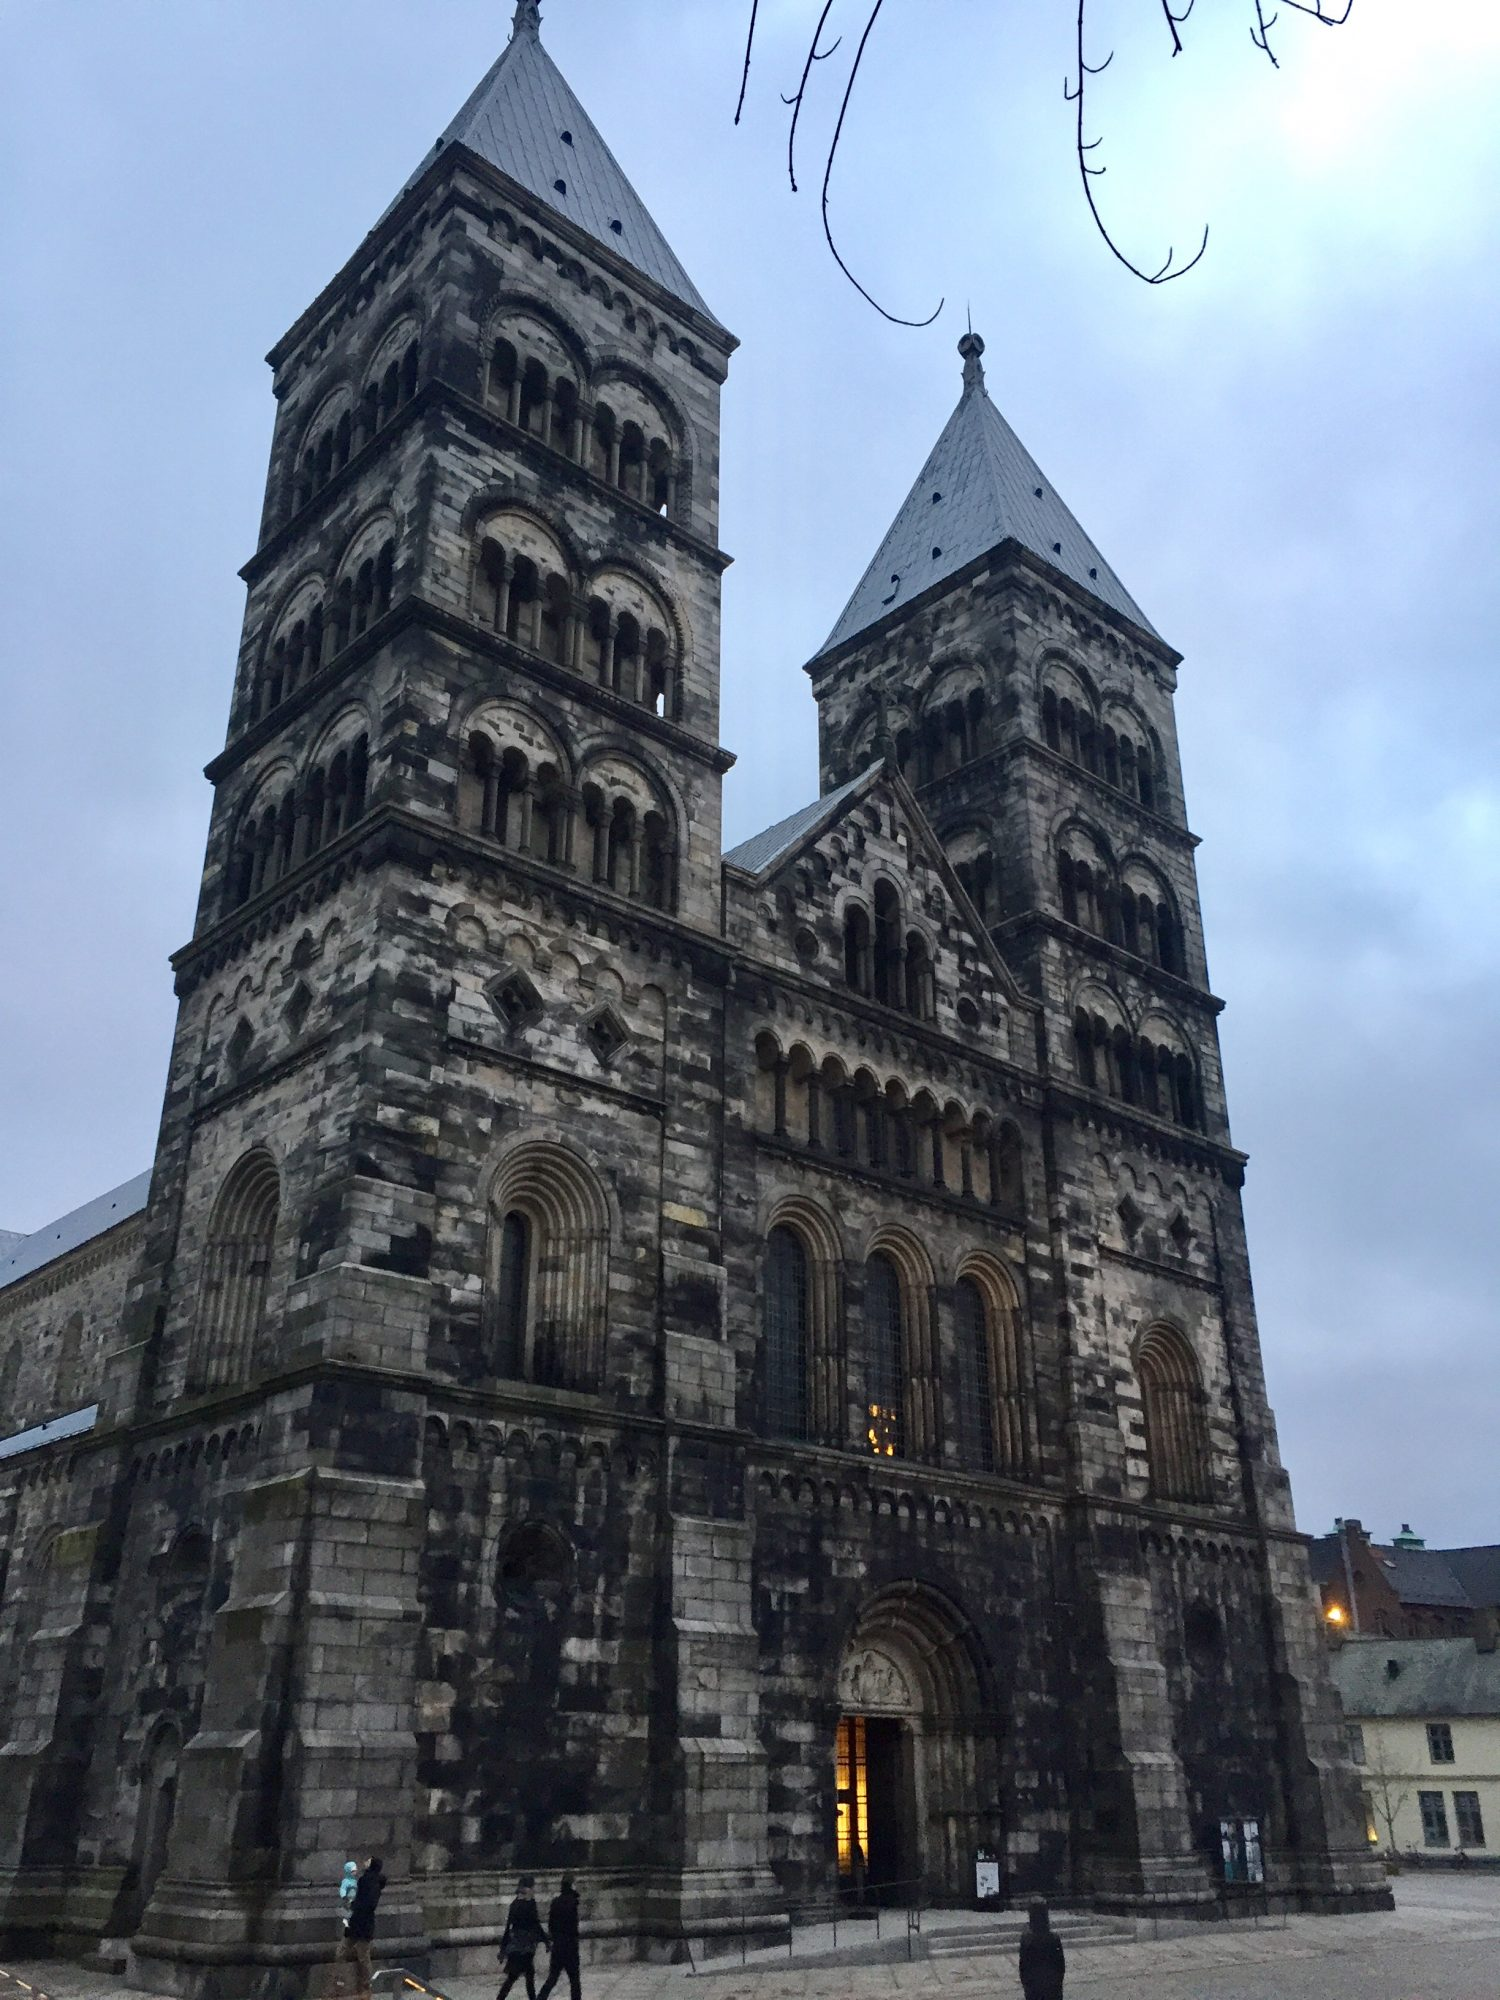 The Cathedral in Lund, Sweden, a 20 minute train ride from Malmo. Lund is a small, but lively University town.